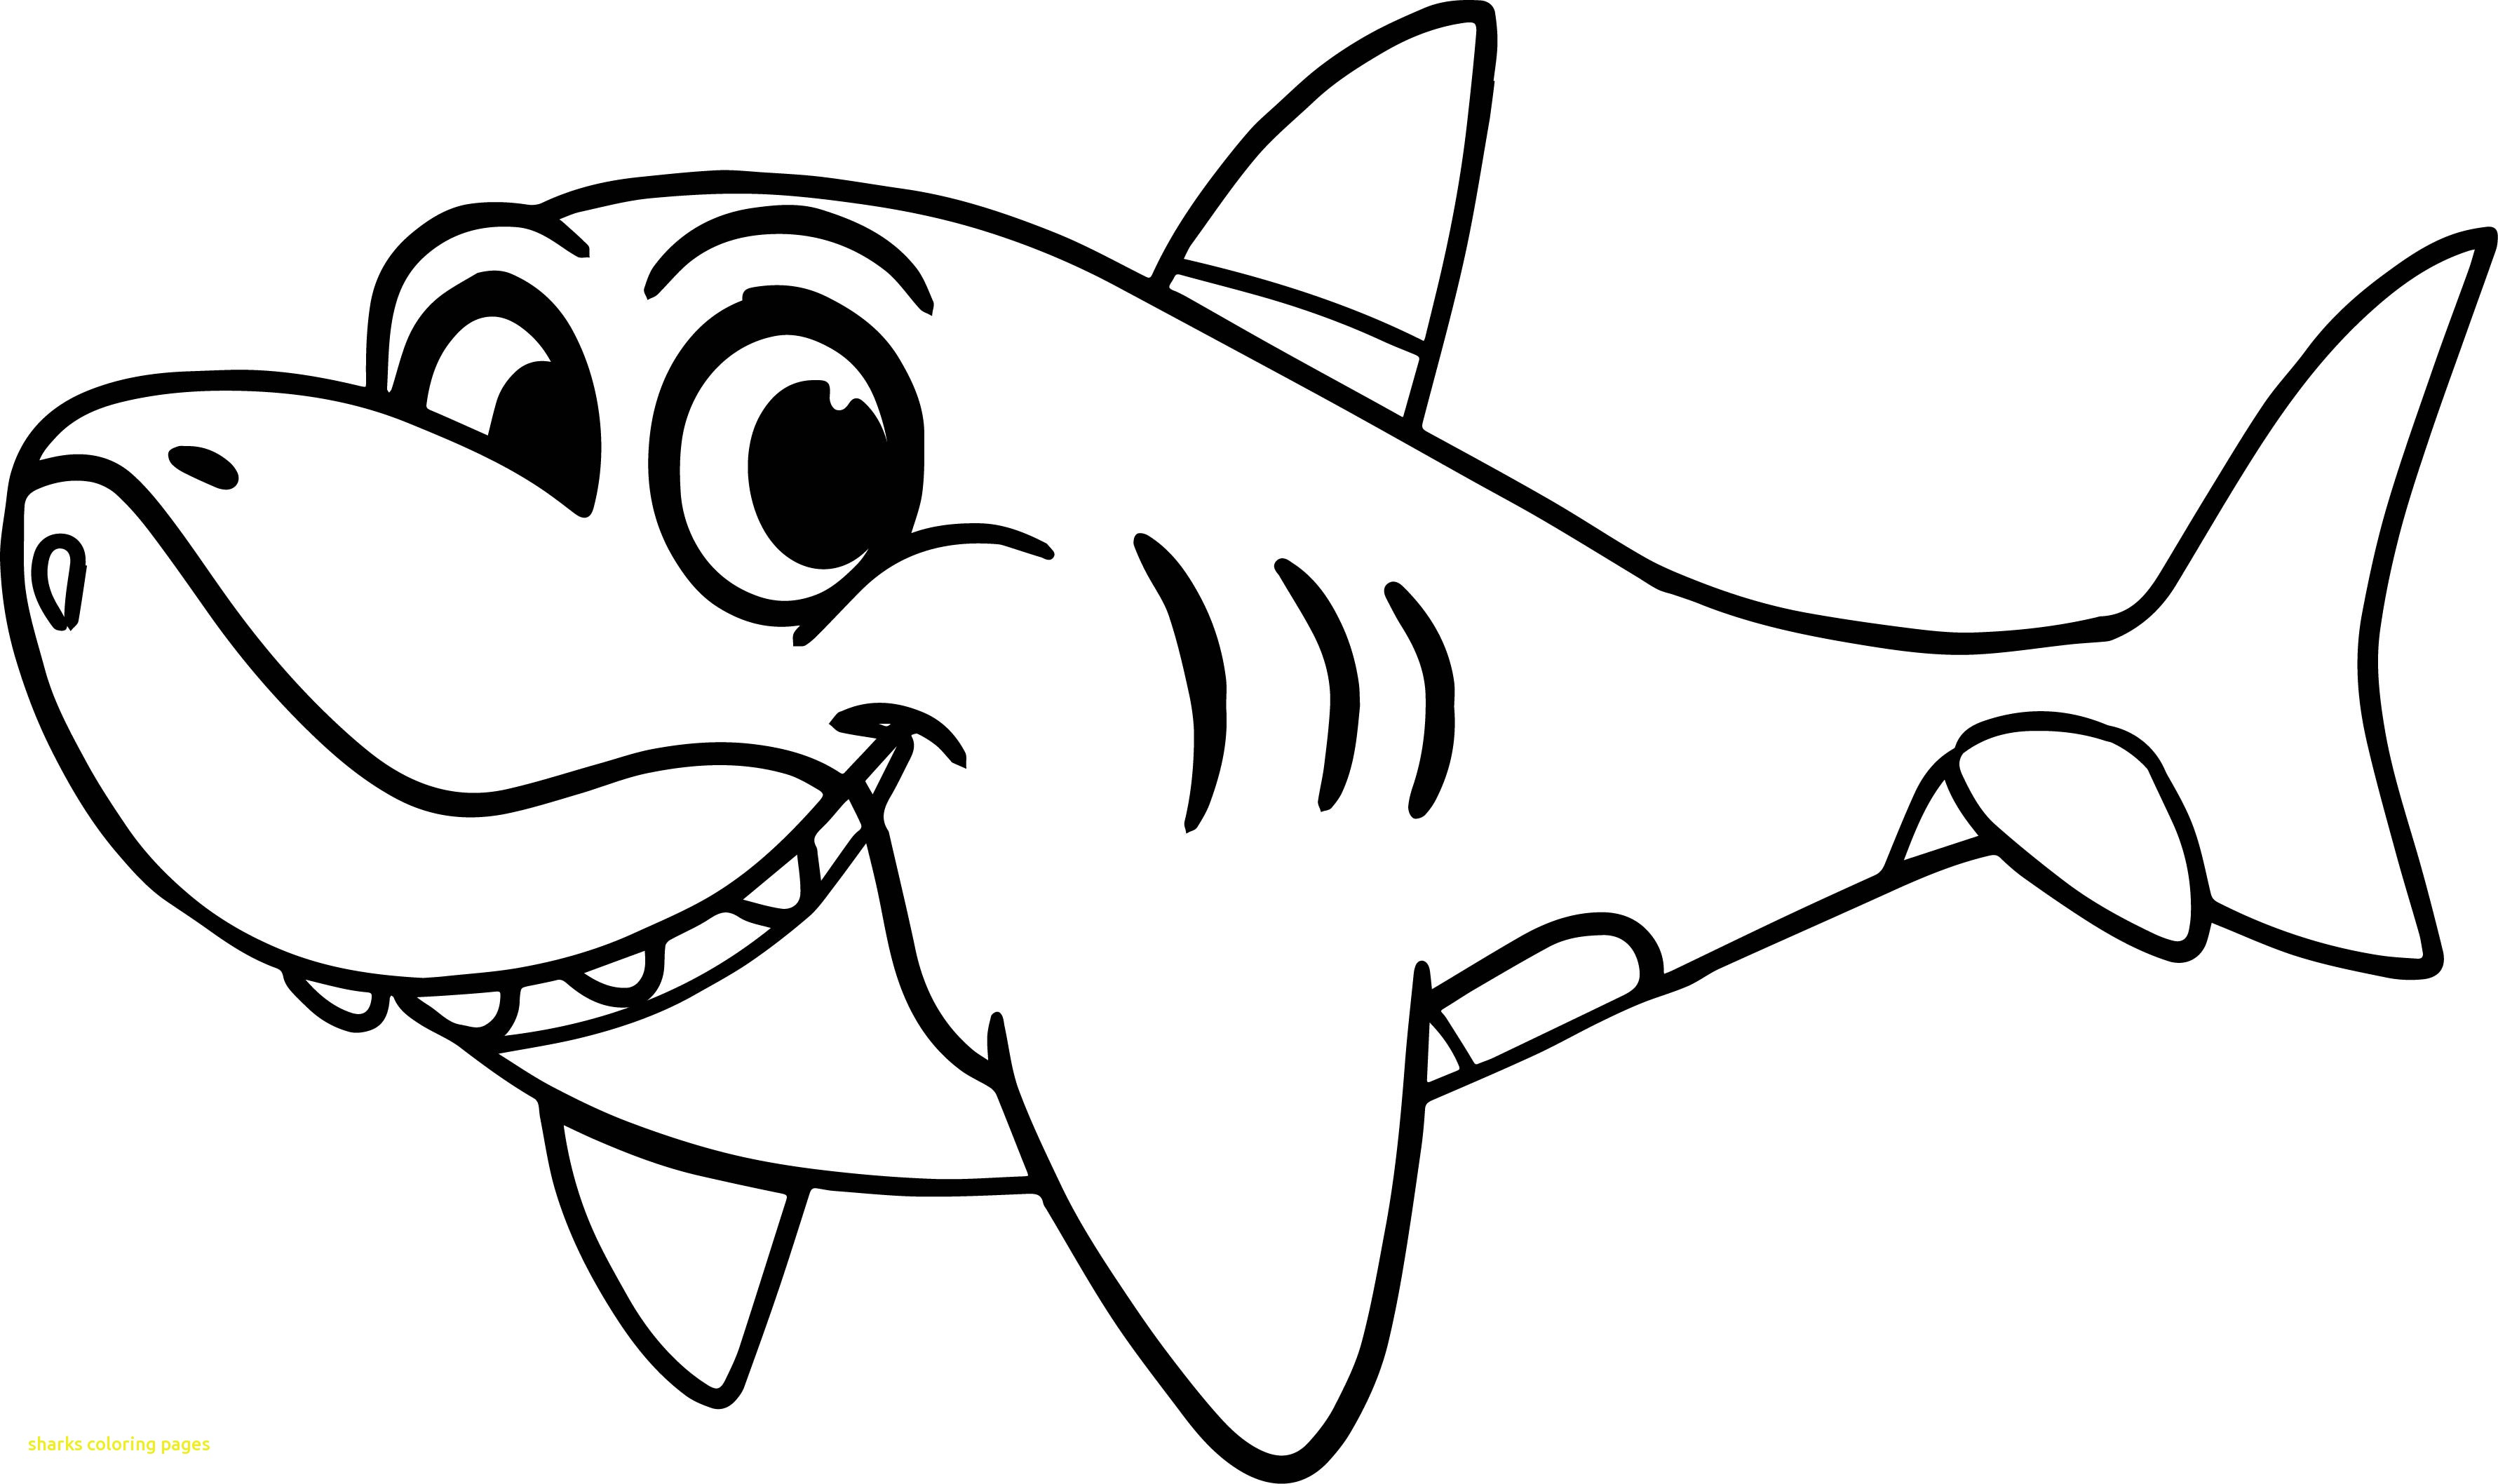 How To Draw A Shark Coloring Pages